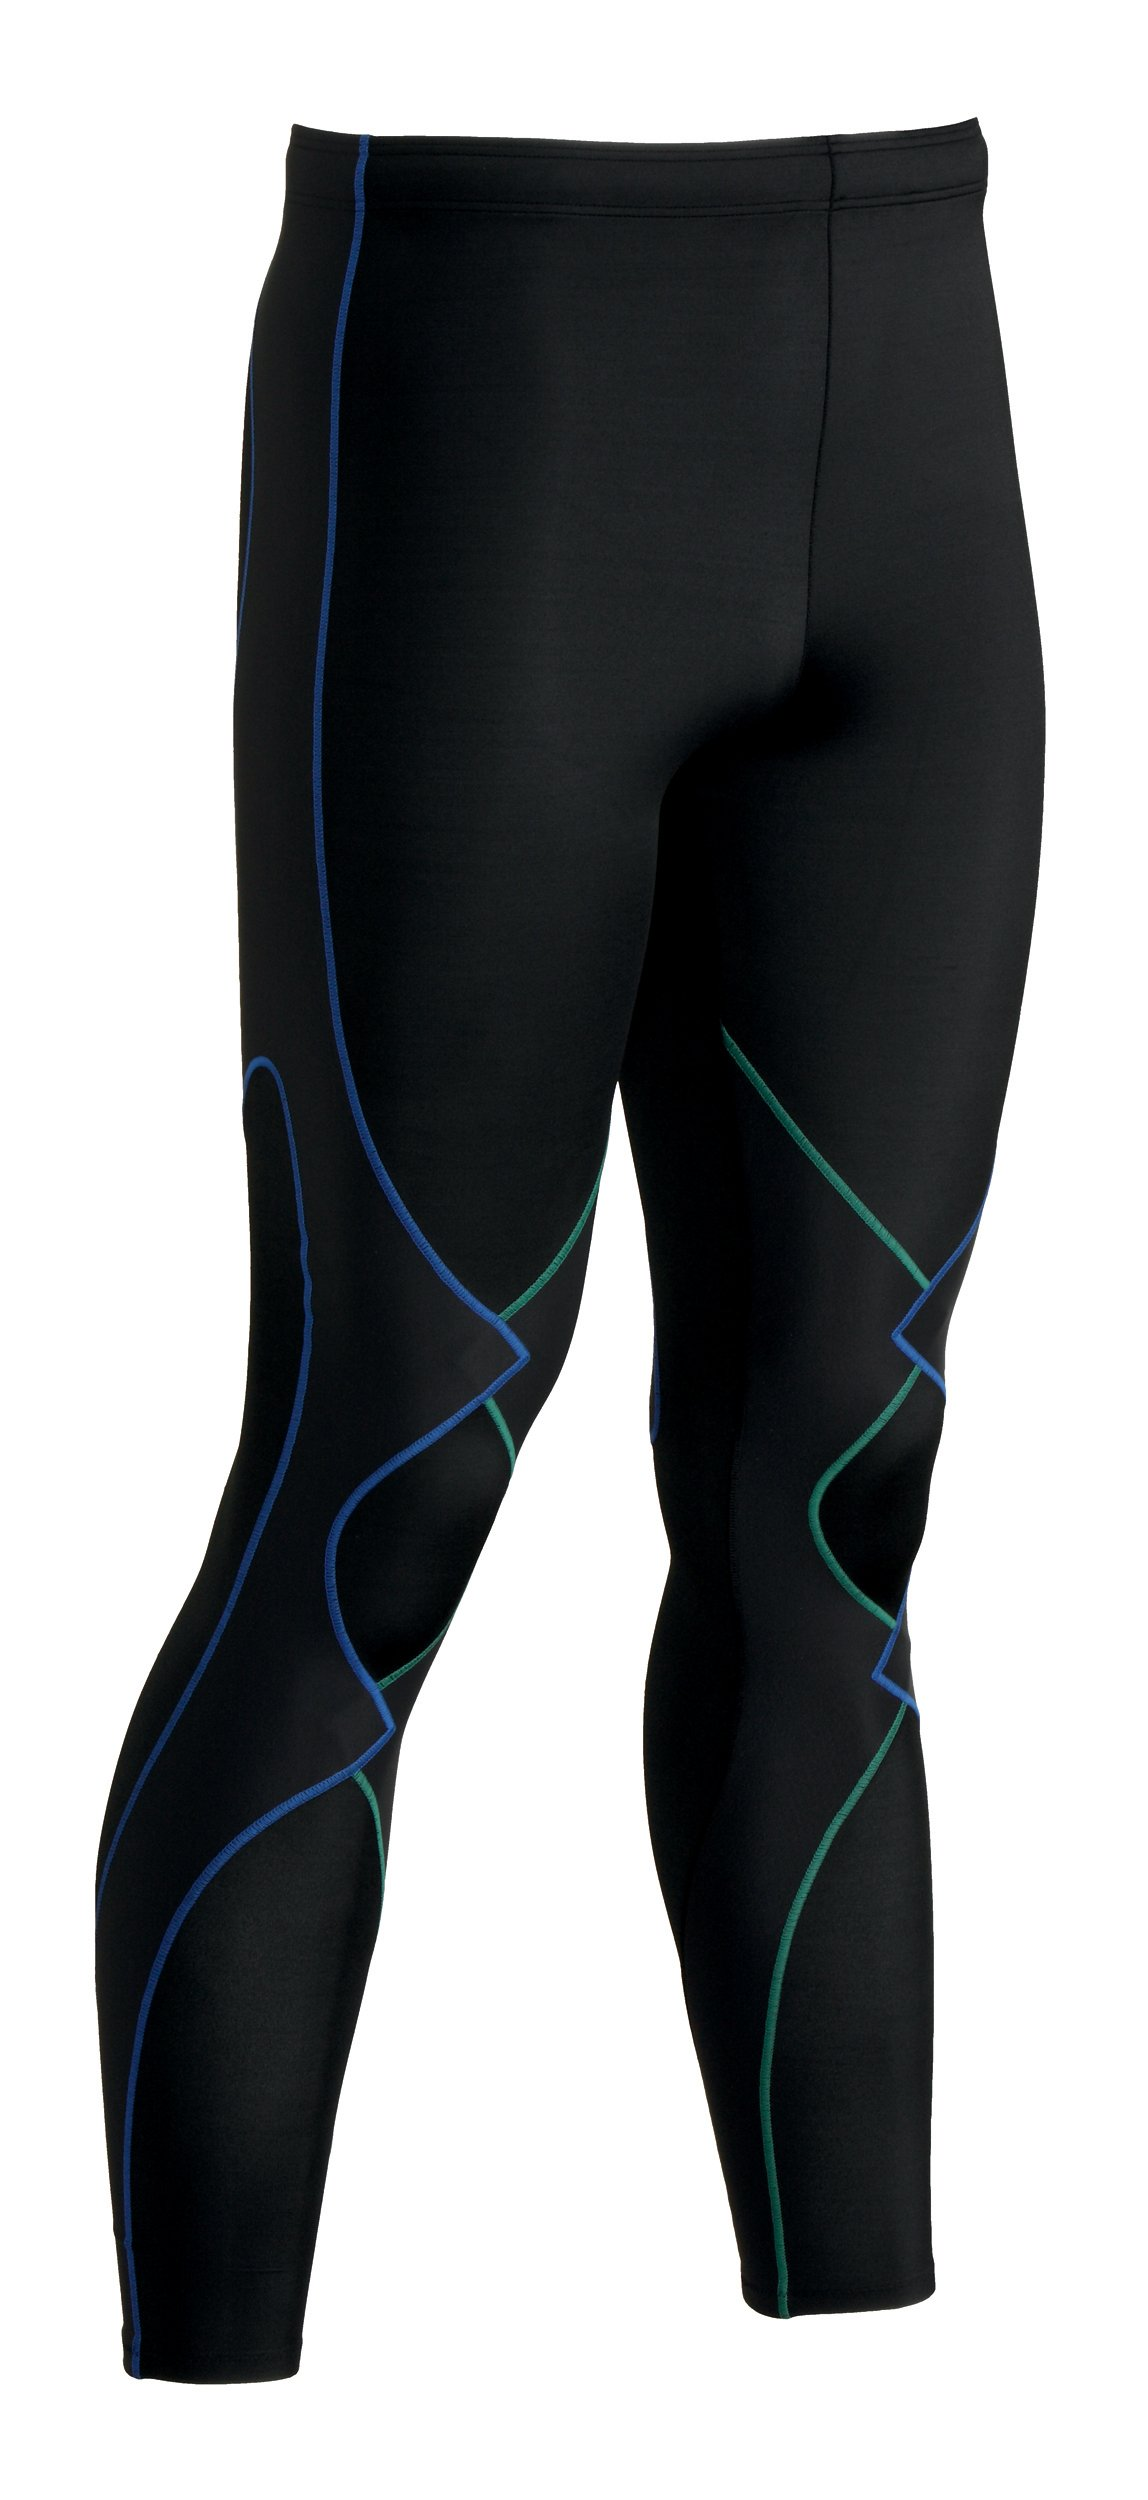 CW-X Men's Expert Joint Support Compression Tights